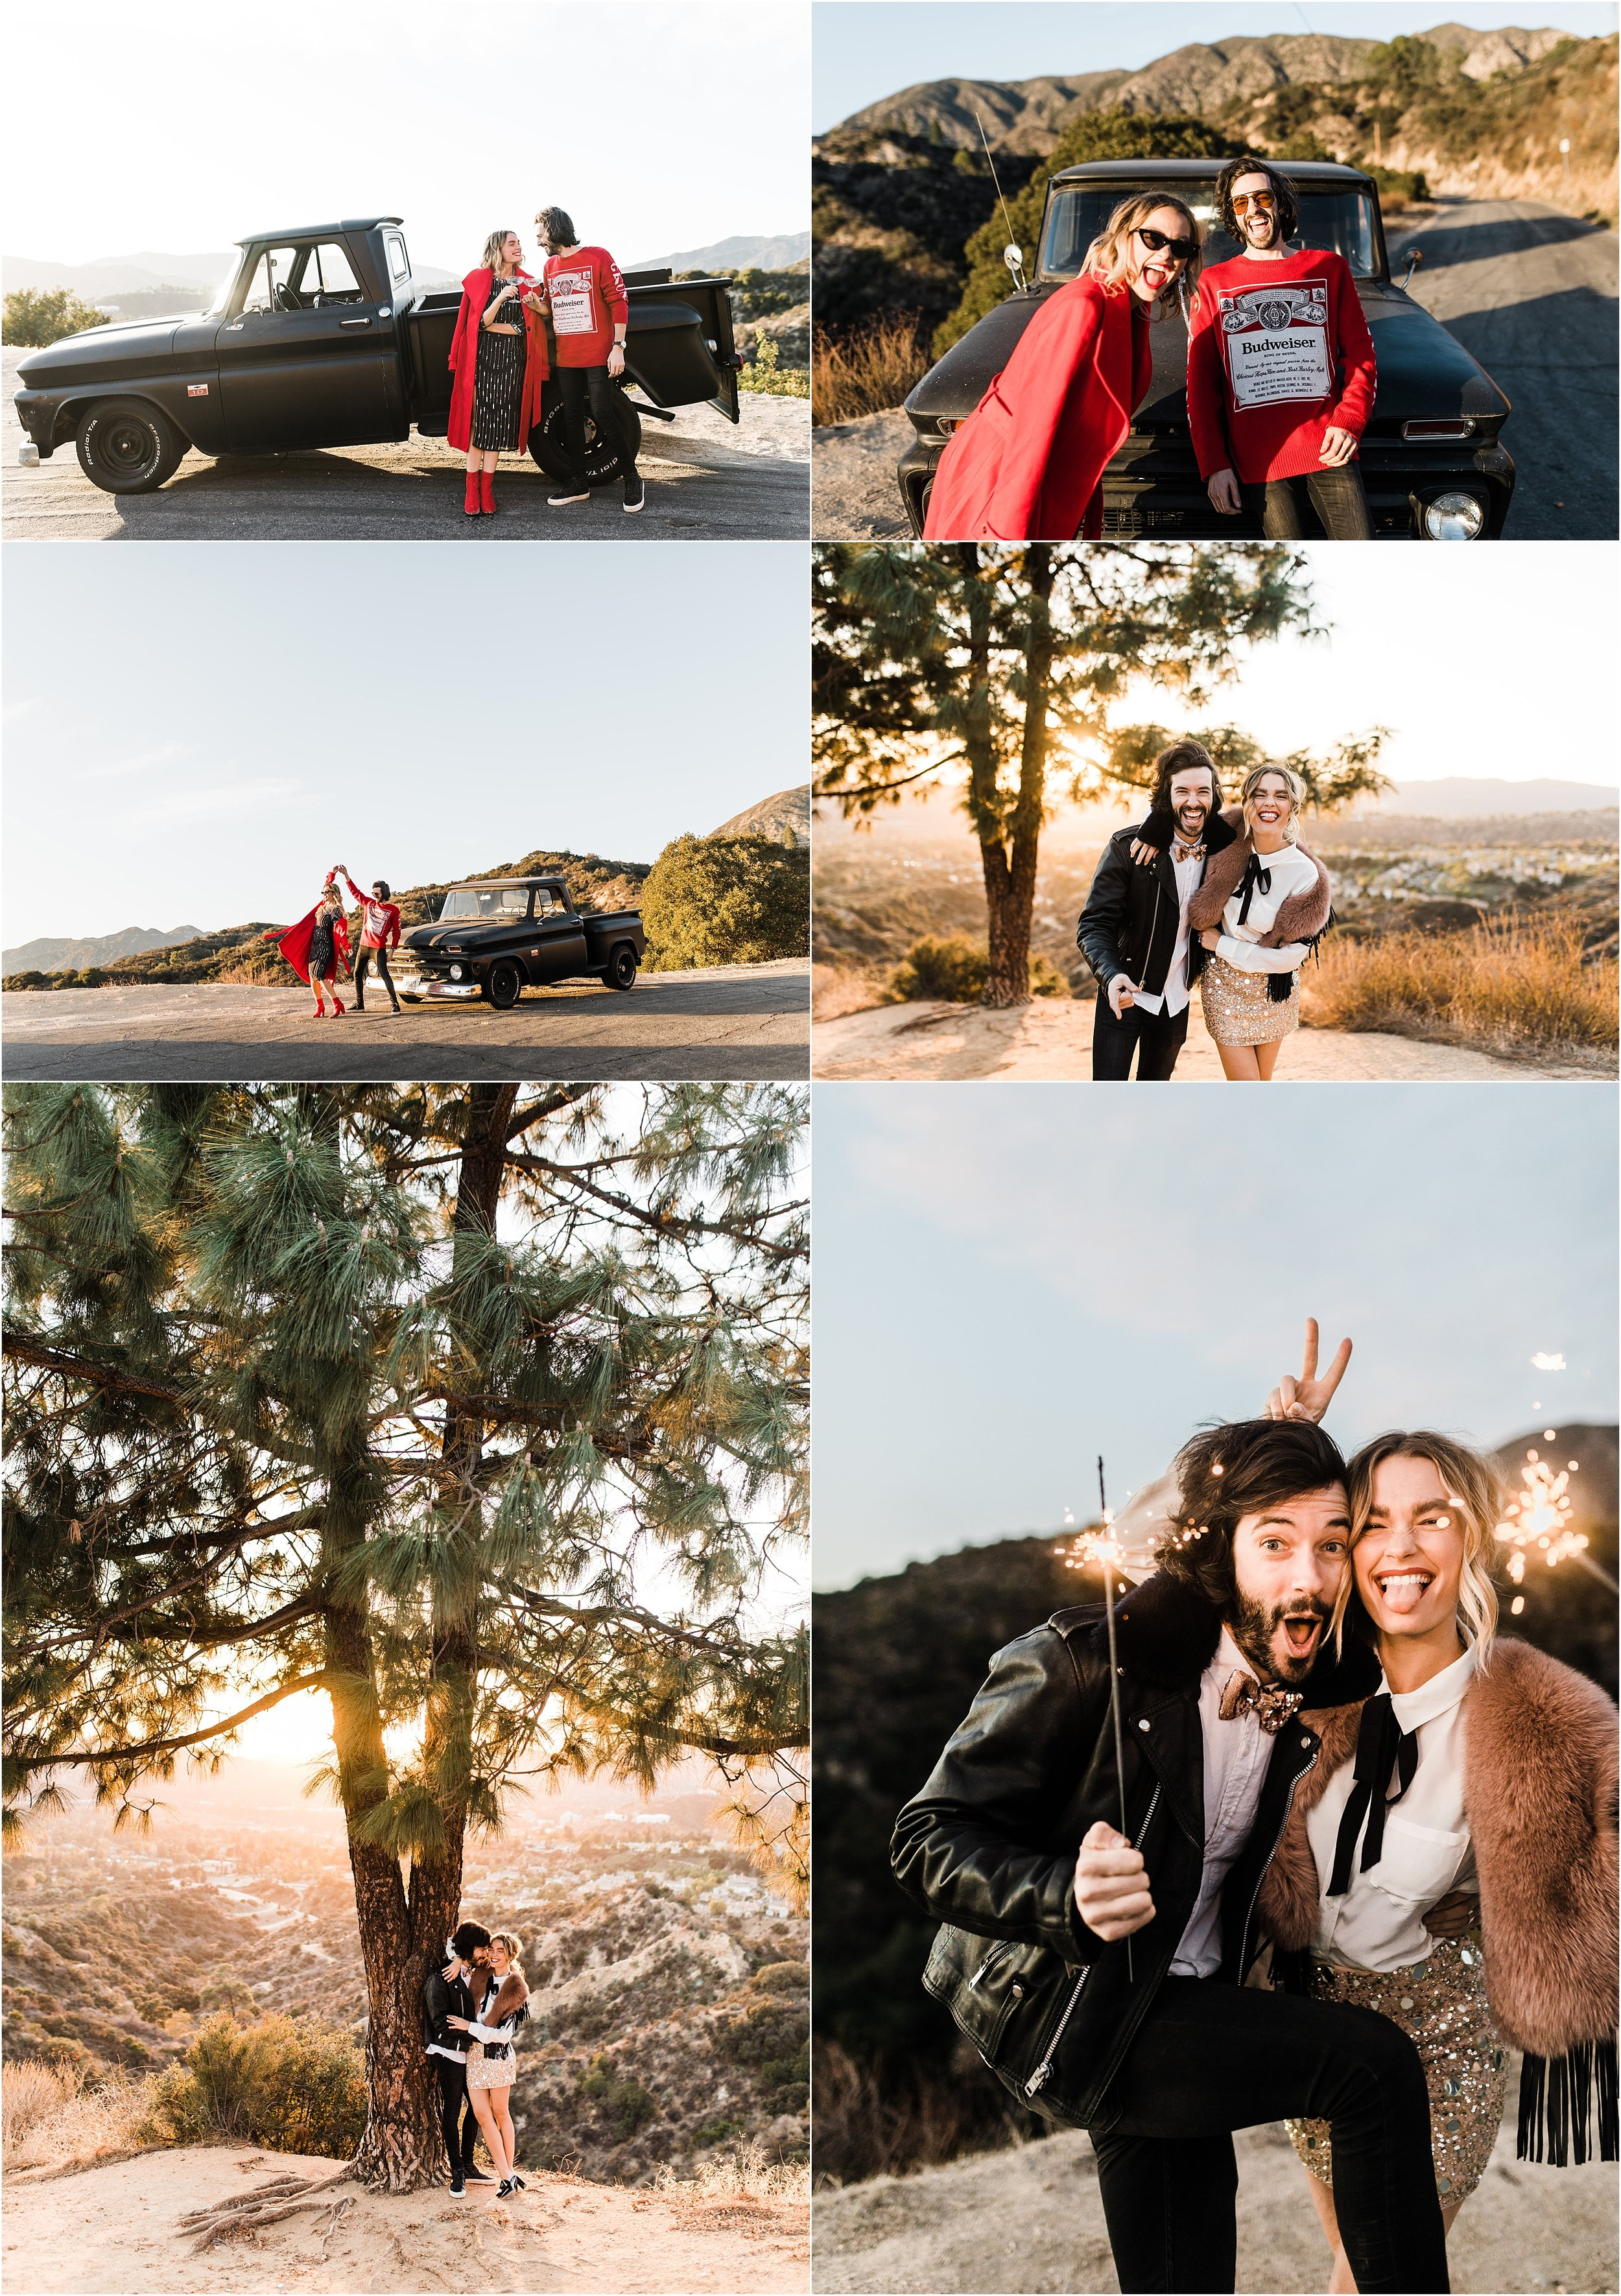 Angeles-Crest-Highway-Engagment-Photos-Clarisse-Rae-Southern-California-Wedding-Photographer-Videographer